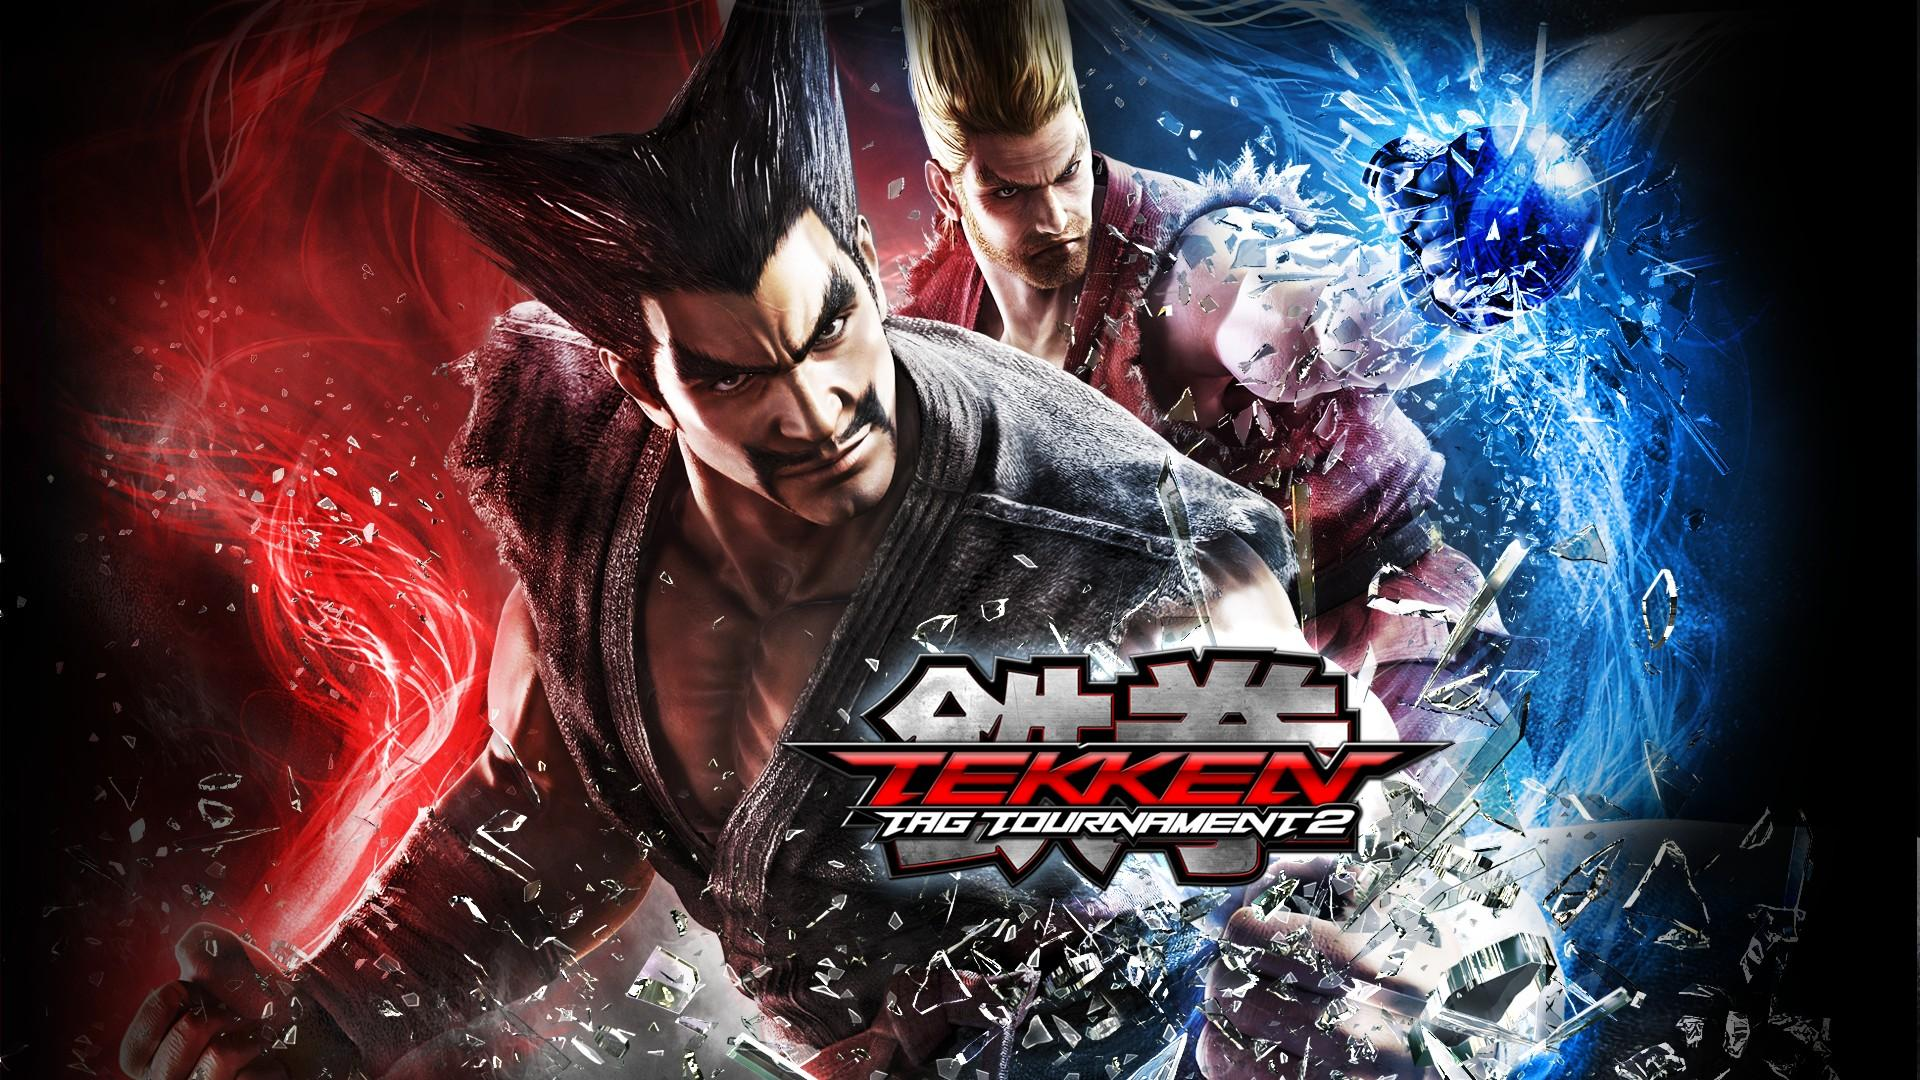 Playstation 3 tekken tag tournament 2 wallpaper 80278 1920x1080